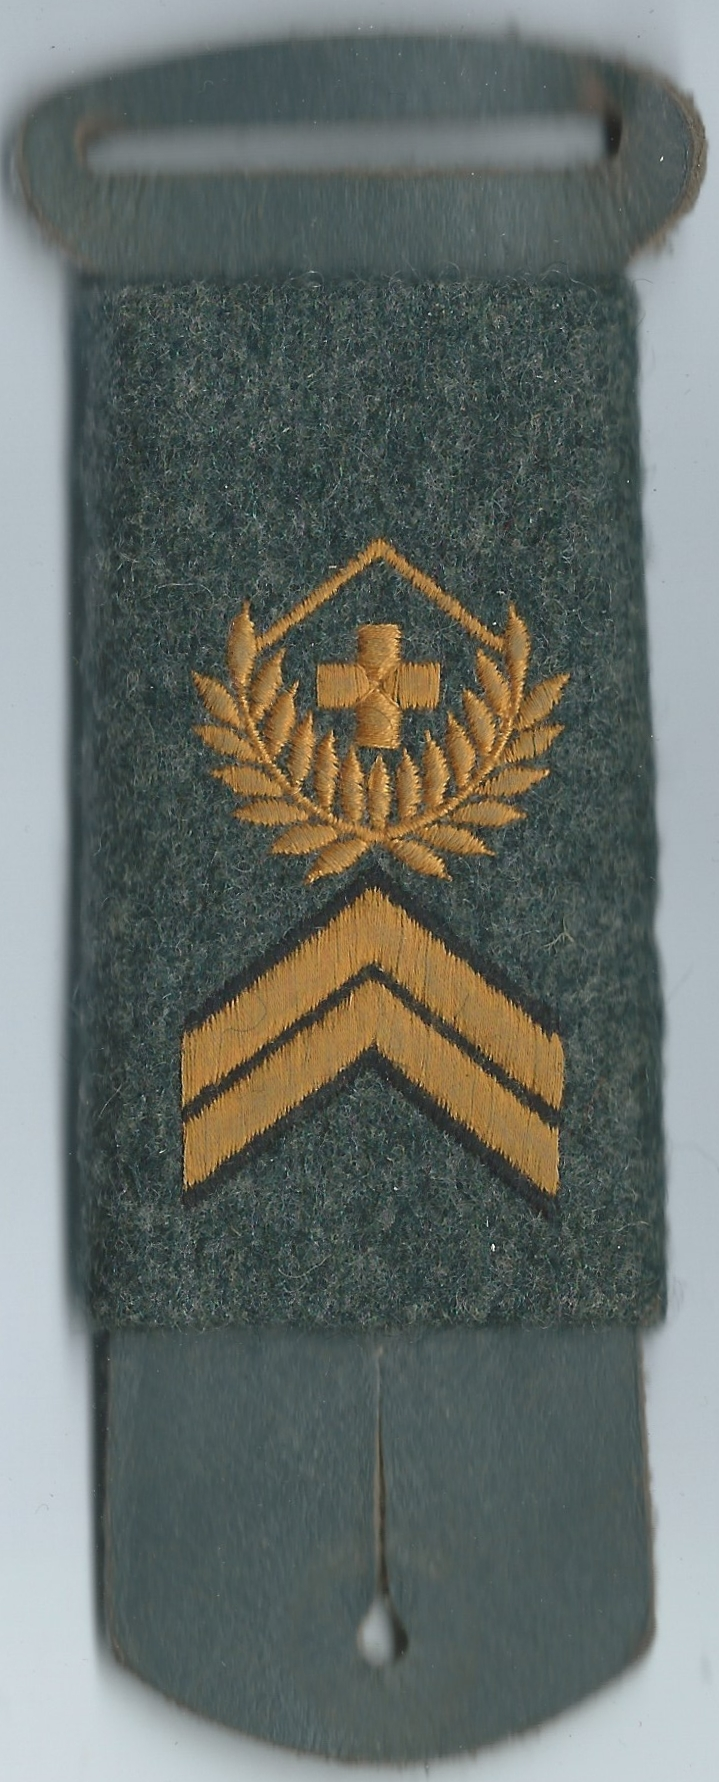 Ranks, badges, patches, epaulets of the Swiss Armed Forces - Page 14 Feldwe11